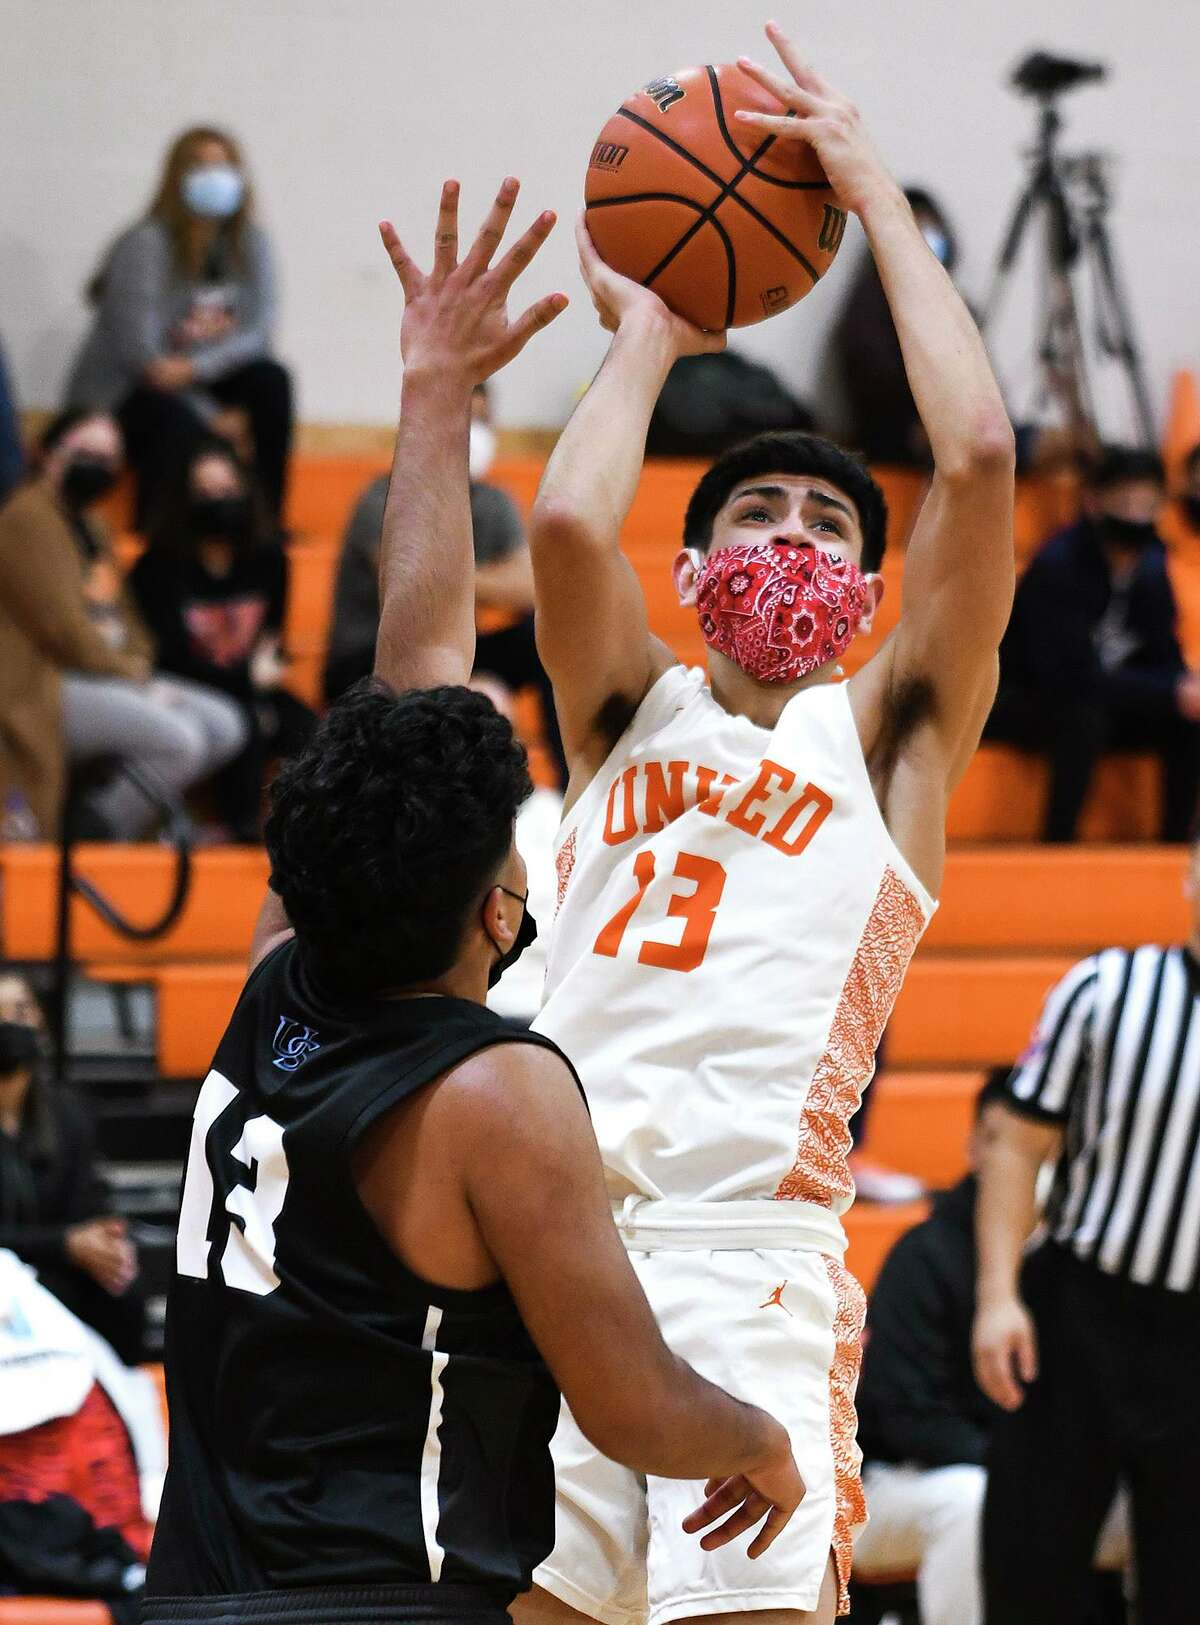 Carlos Puerto and the United Longhorns seek to snap a three-game skid as they travel to Eagle Pass on Tuesday.